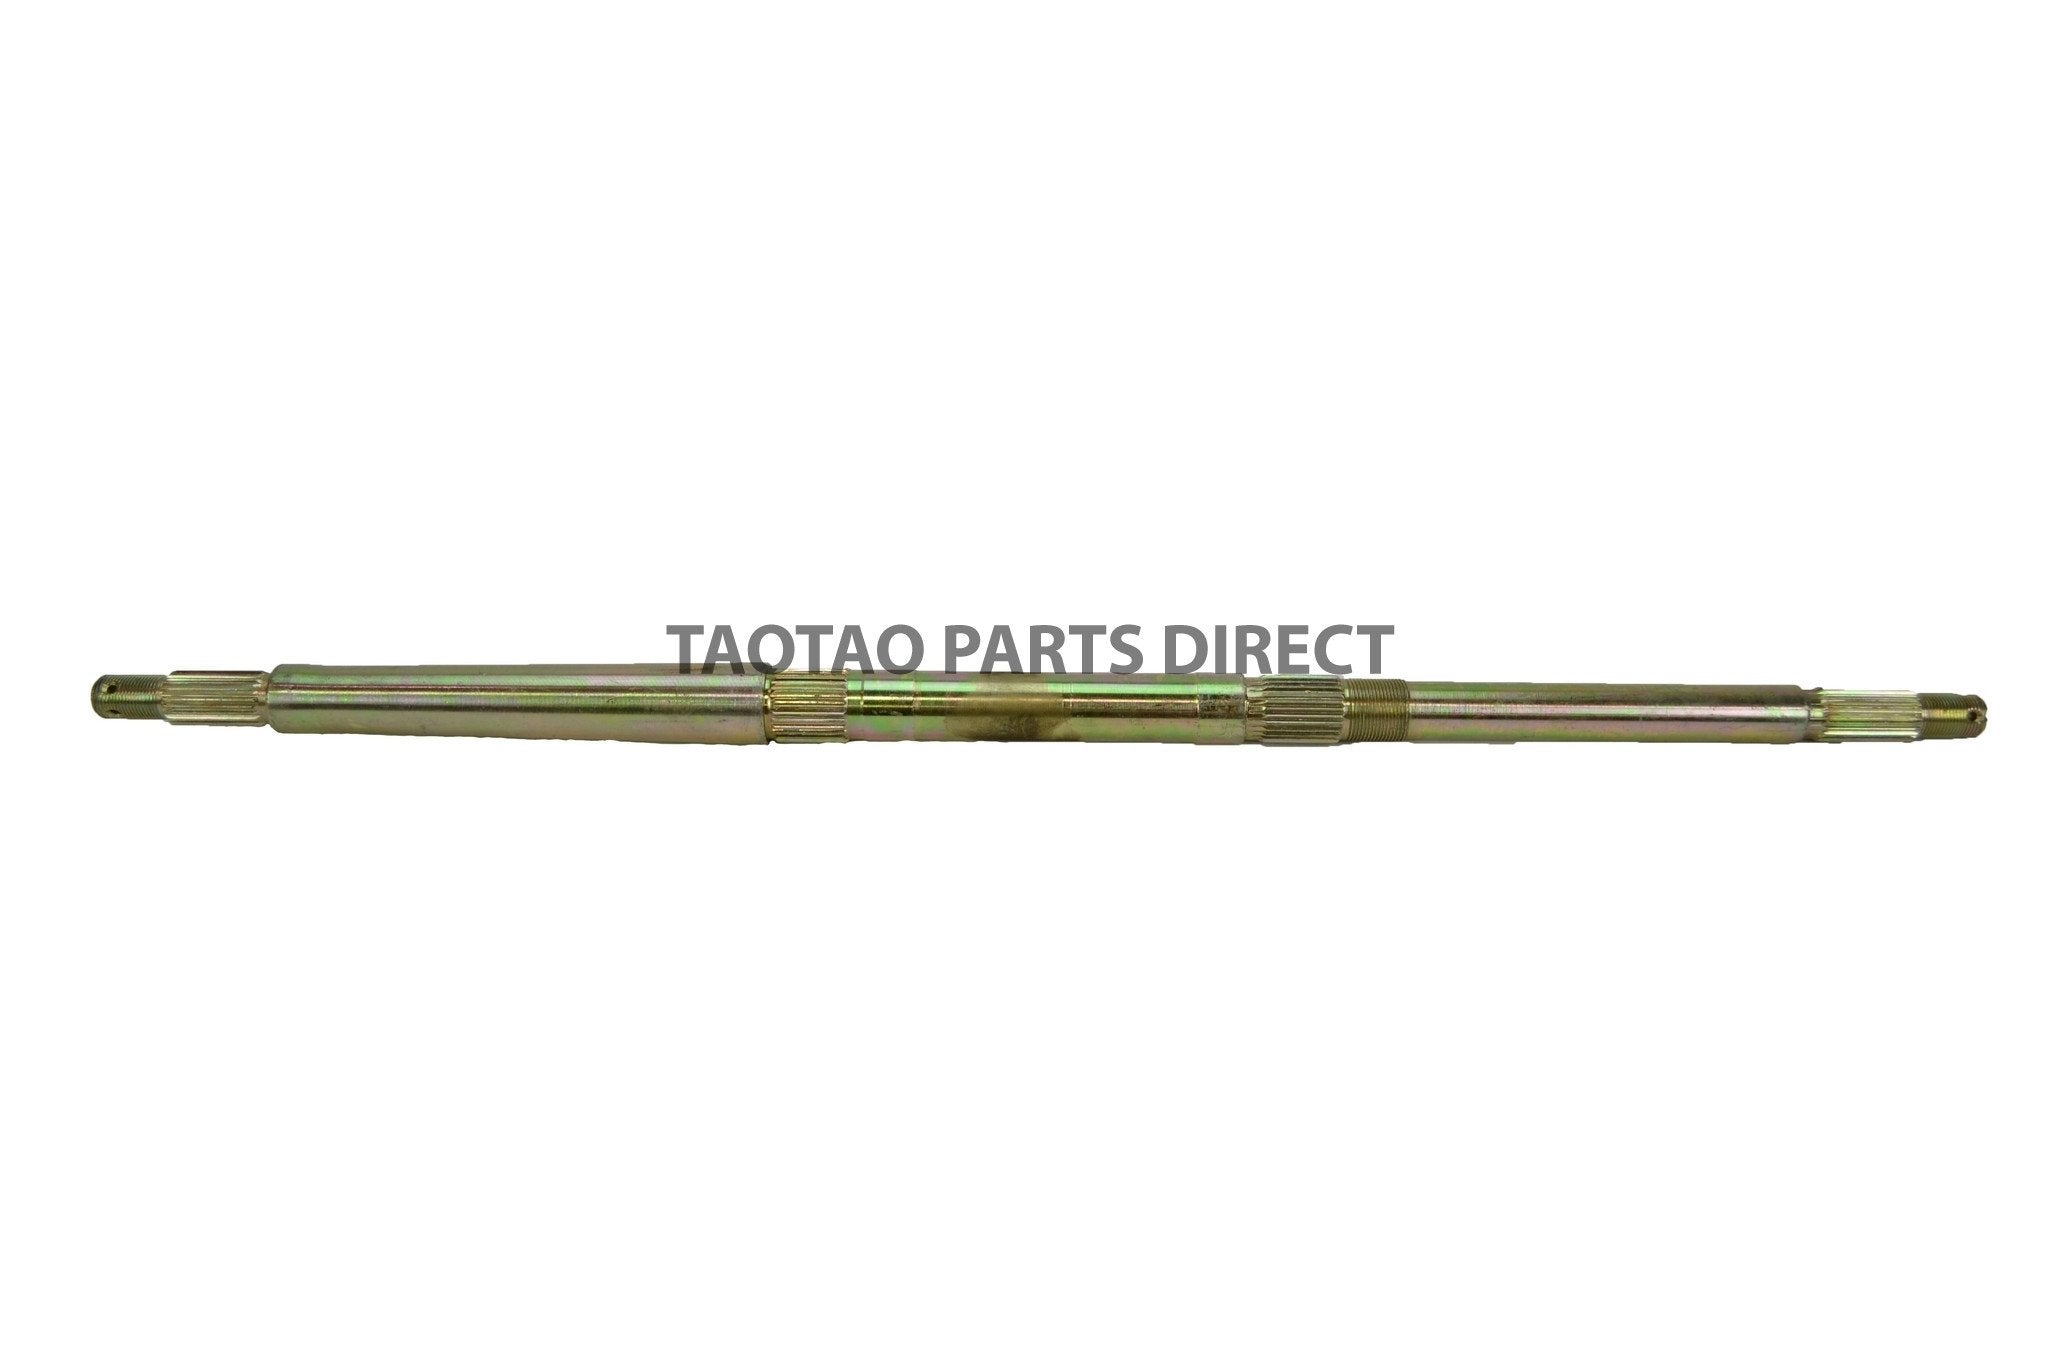 ATA150 Rear Axle - TaoTaoPartsDirect.com